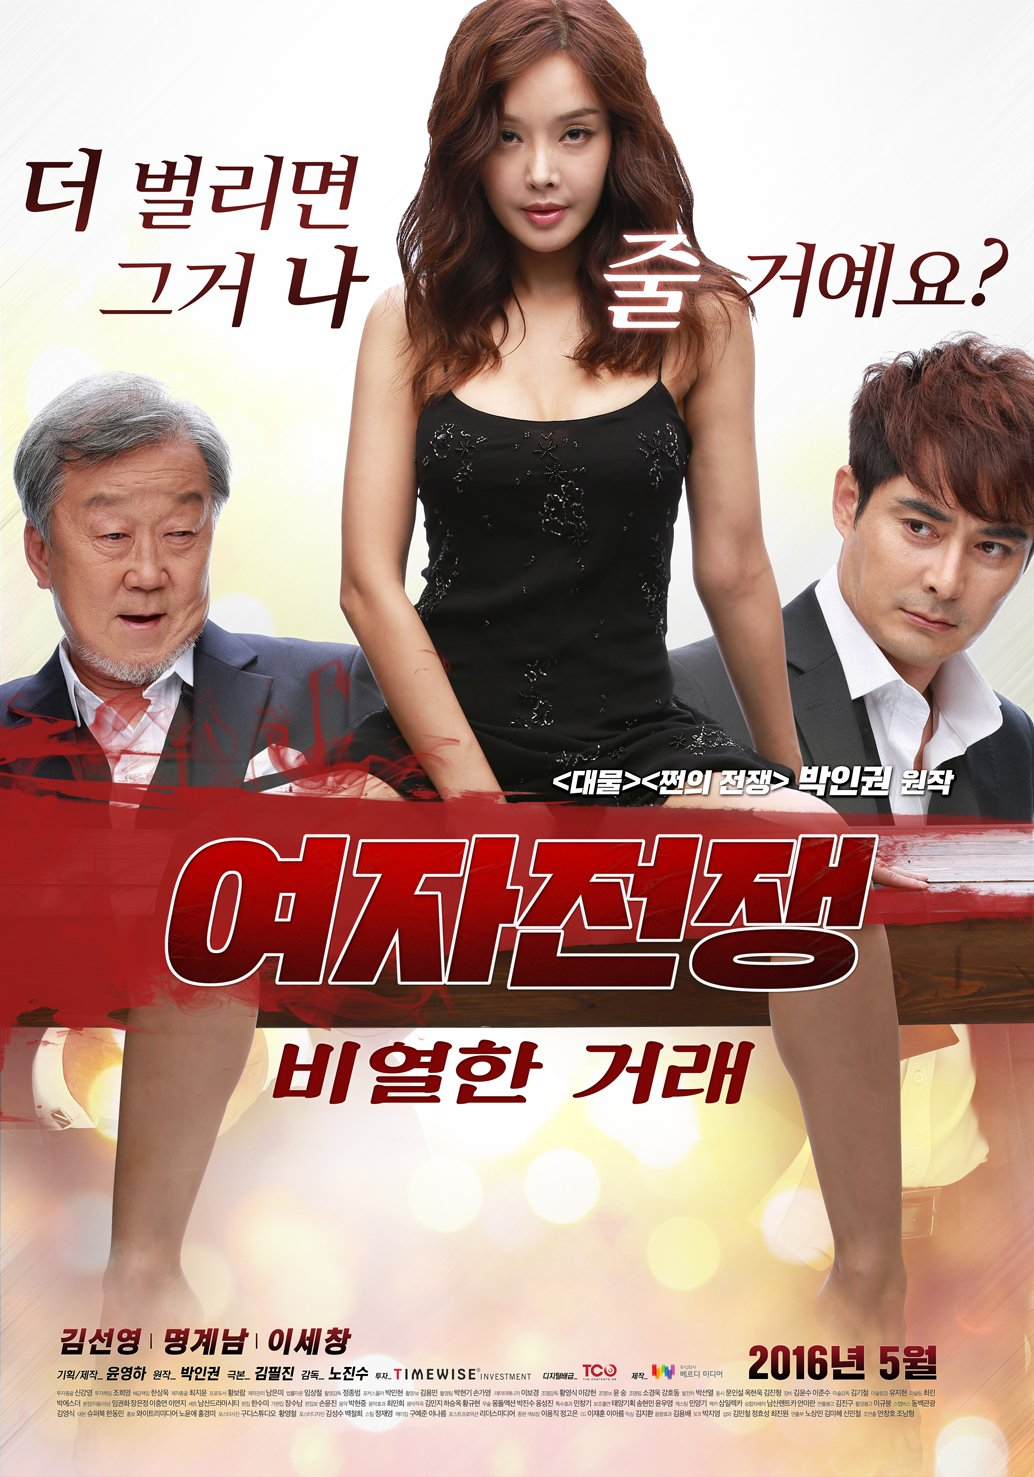 flirting signs of married women movie posters 2015